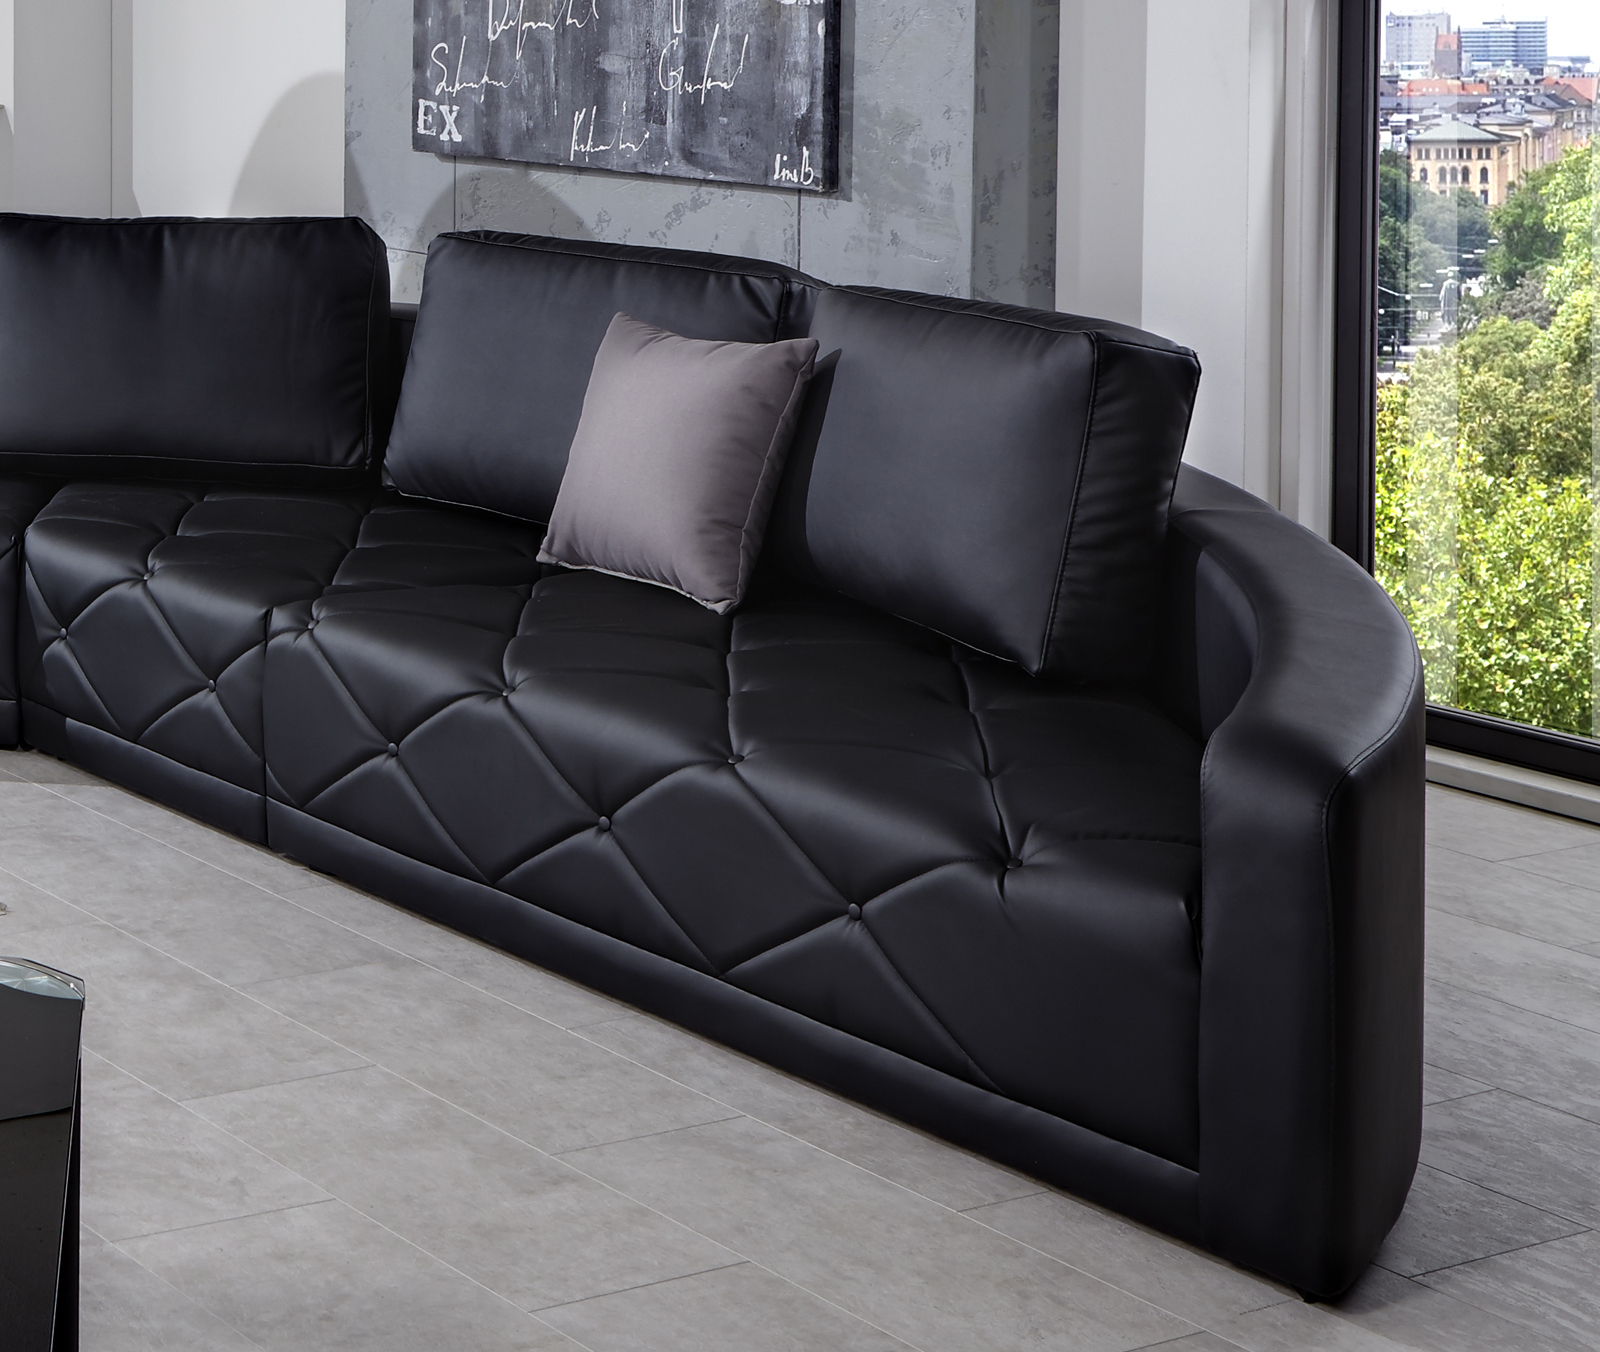 sam design sofa schwarz wohnlandschaft nero 290 x 380 cm auf lager. Black Bedroom Furniture Sets. Home Design Ideas